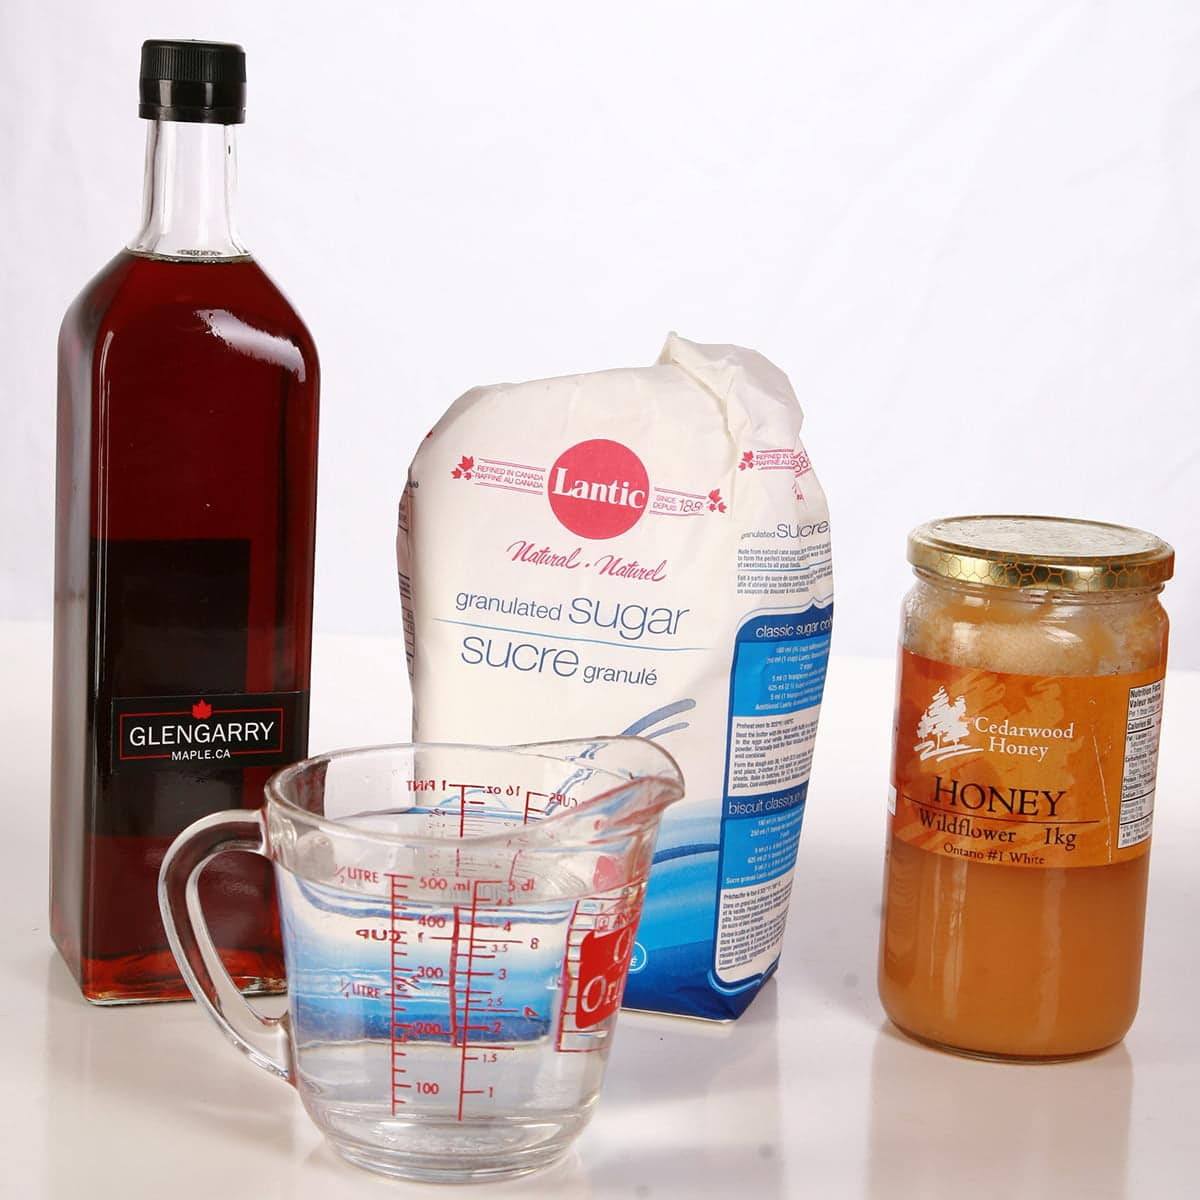 Maple syrup, a bag of sugar, and a jar of honey are pictured behind a measuring glass full of water.